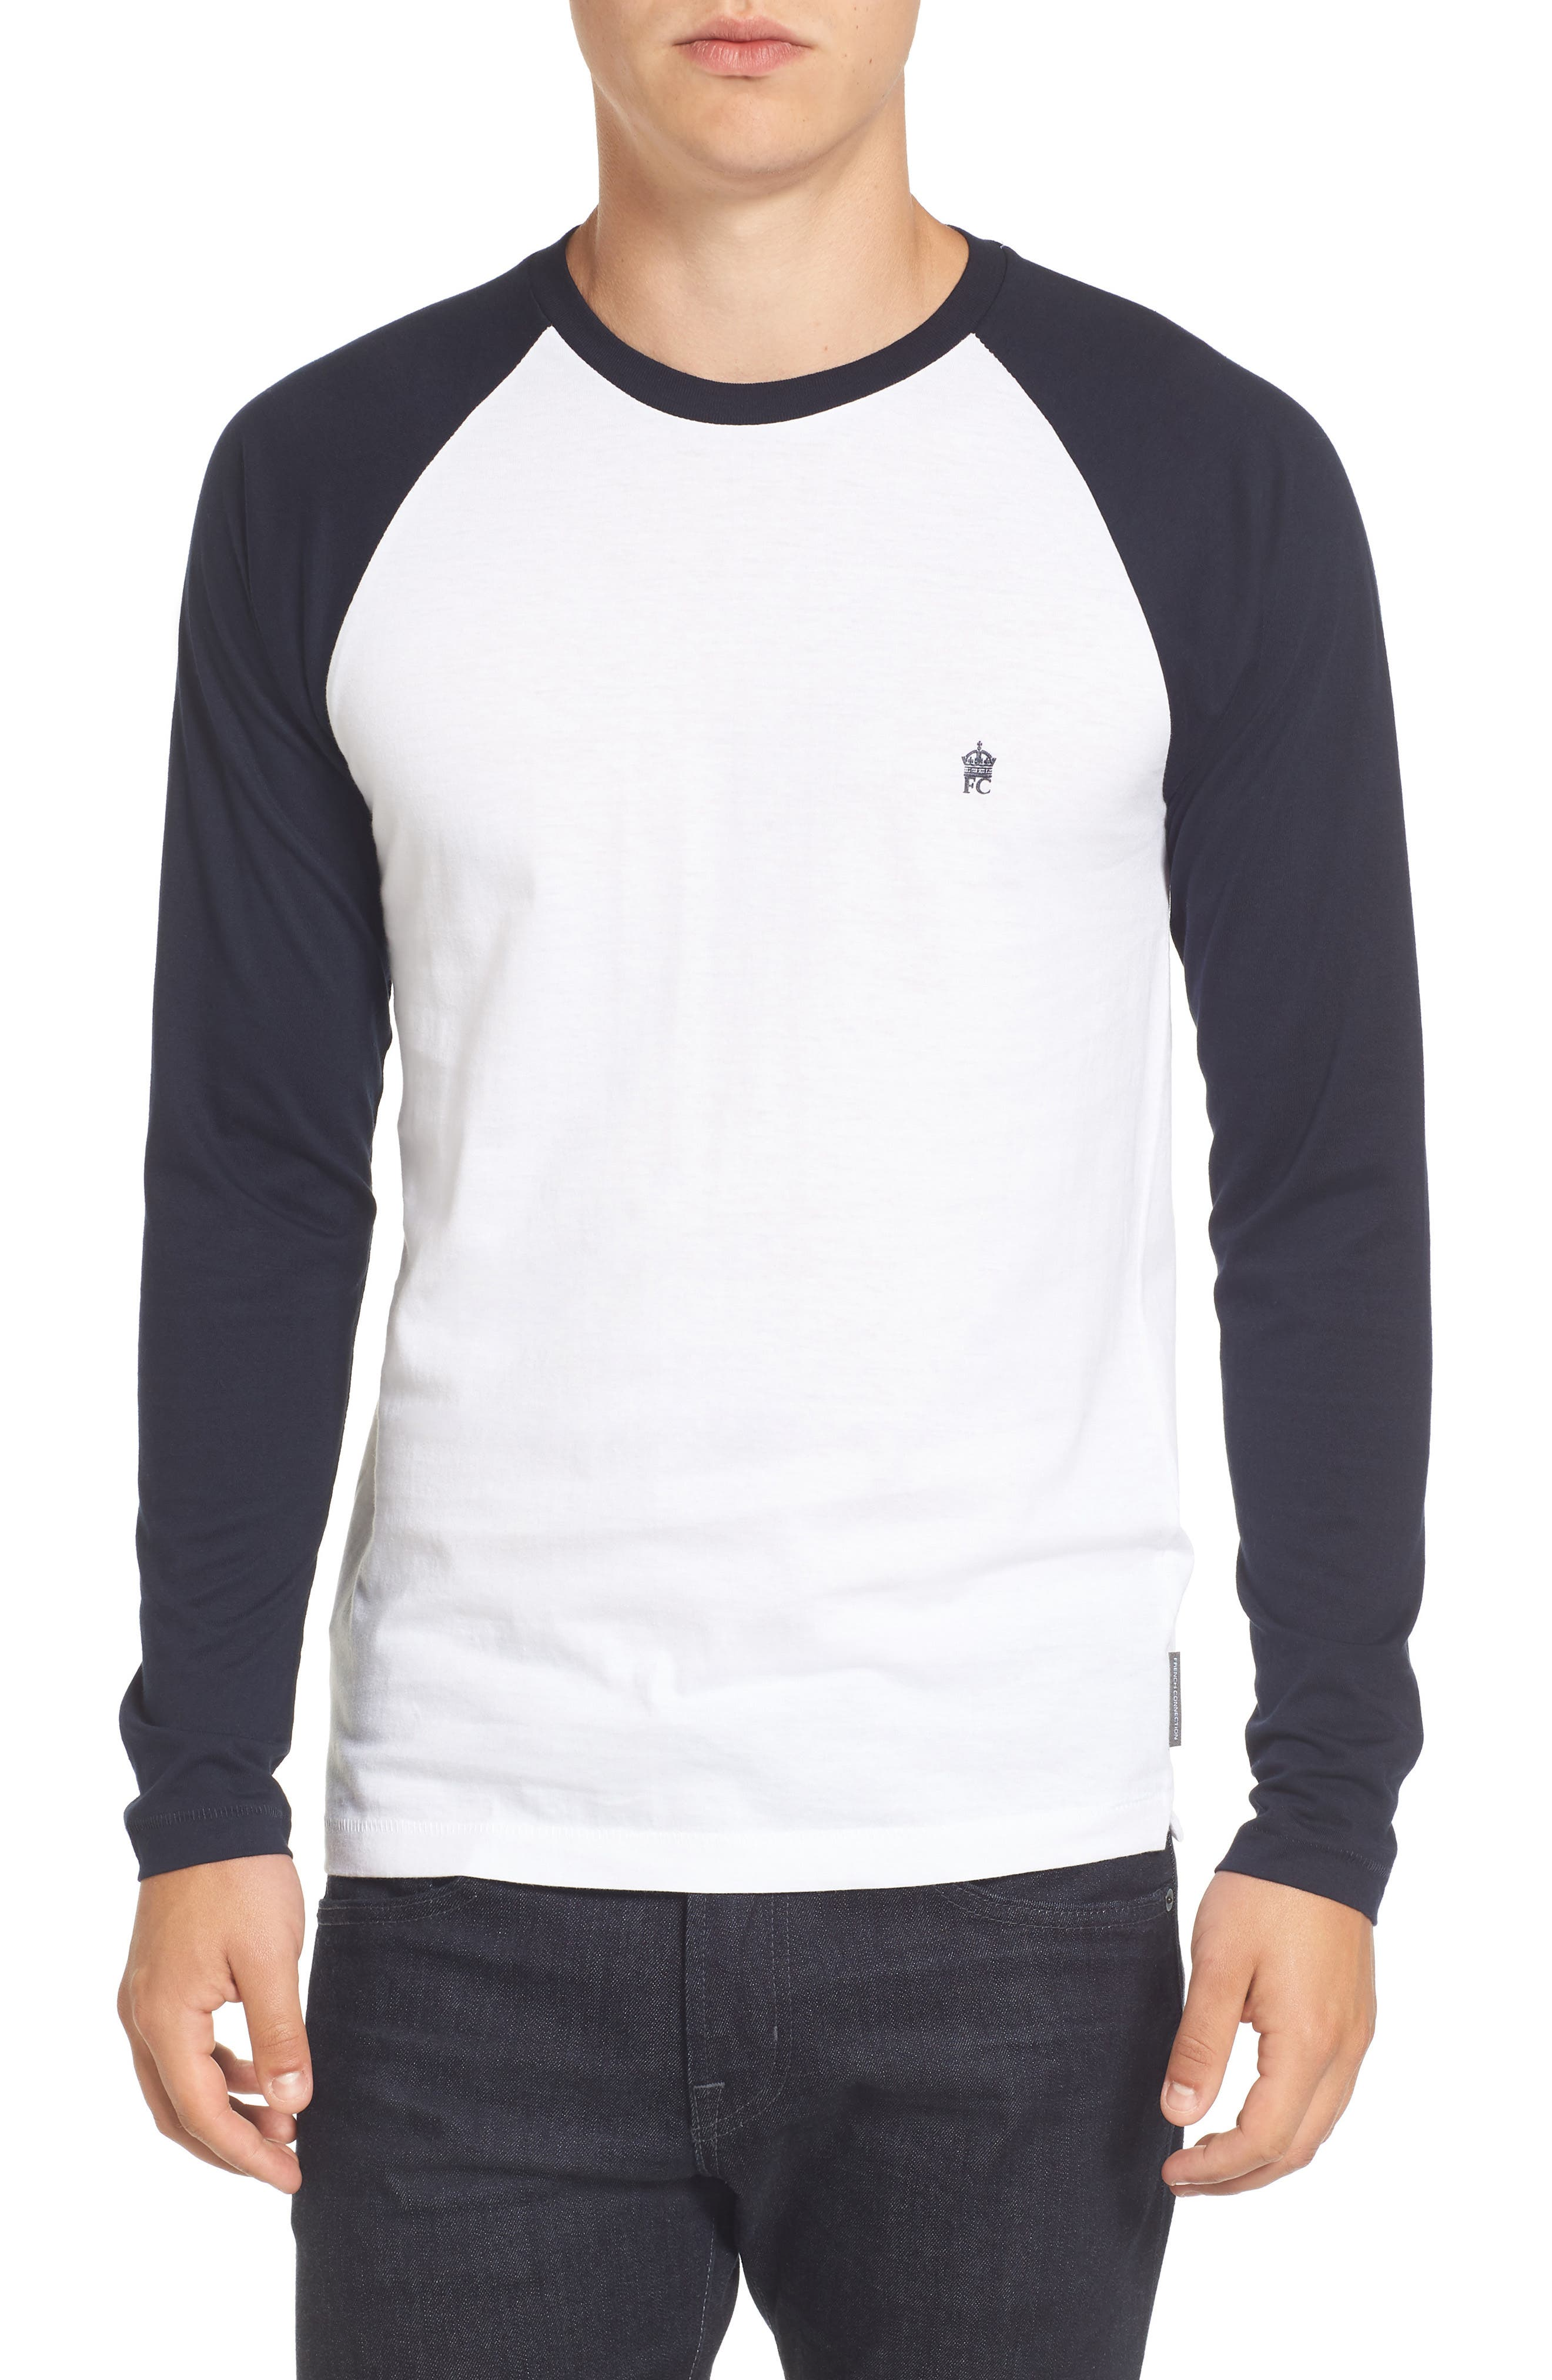 Main Image - French Connection Slim Fit Long Sleeve Raglan T-Shirt